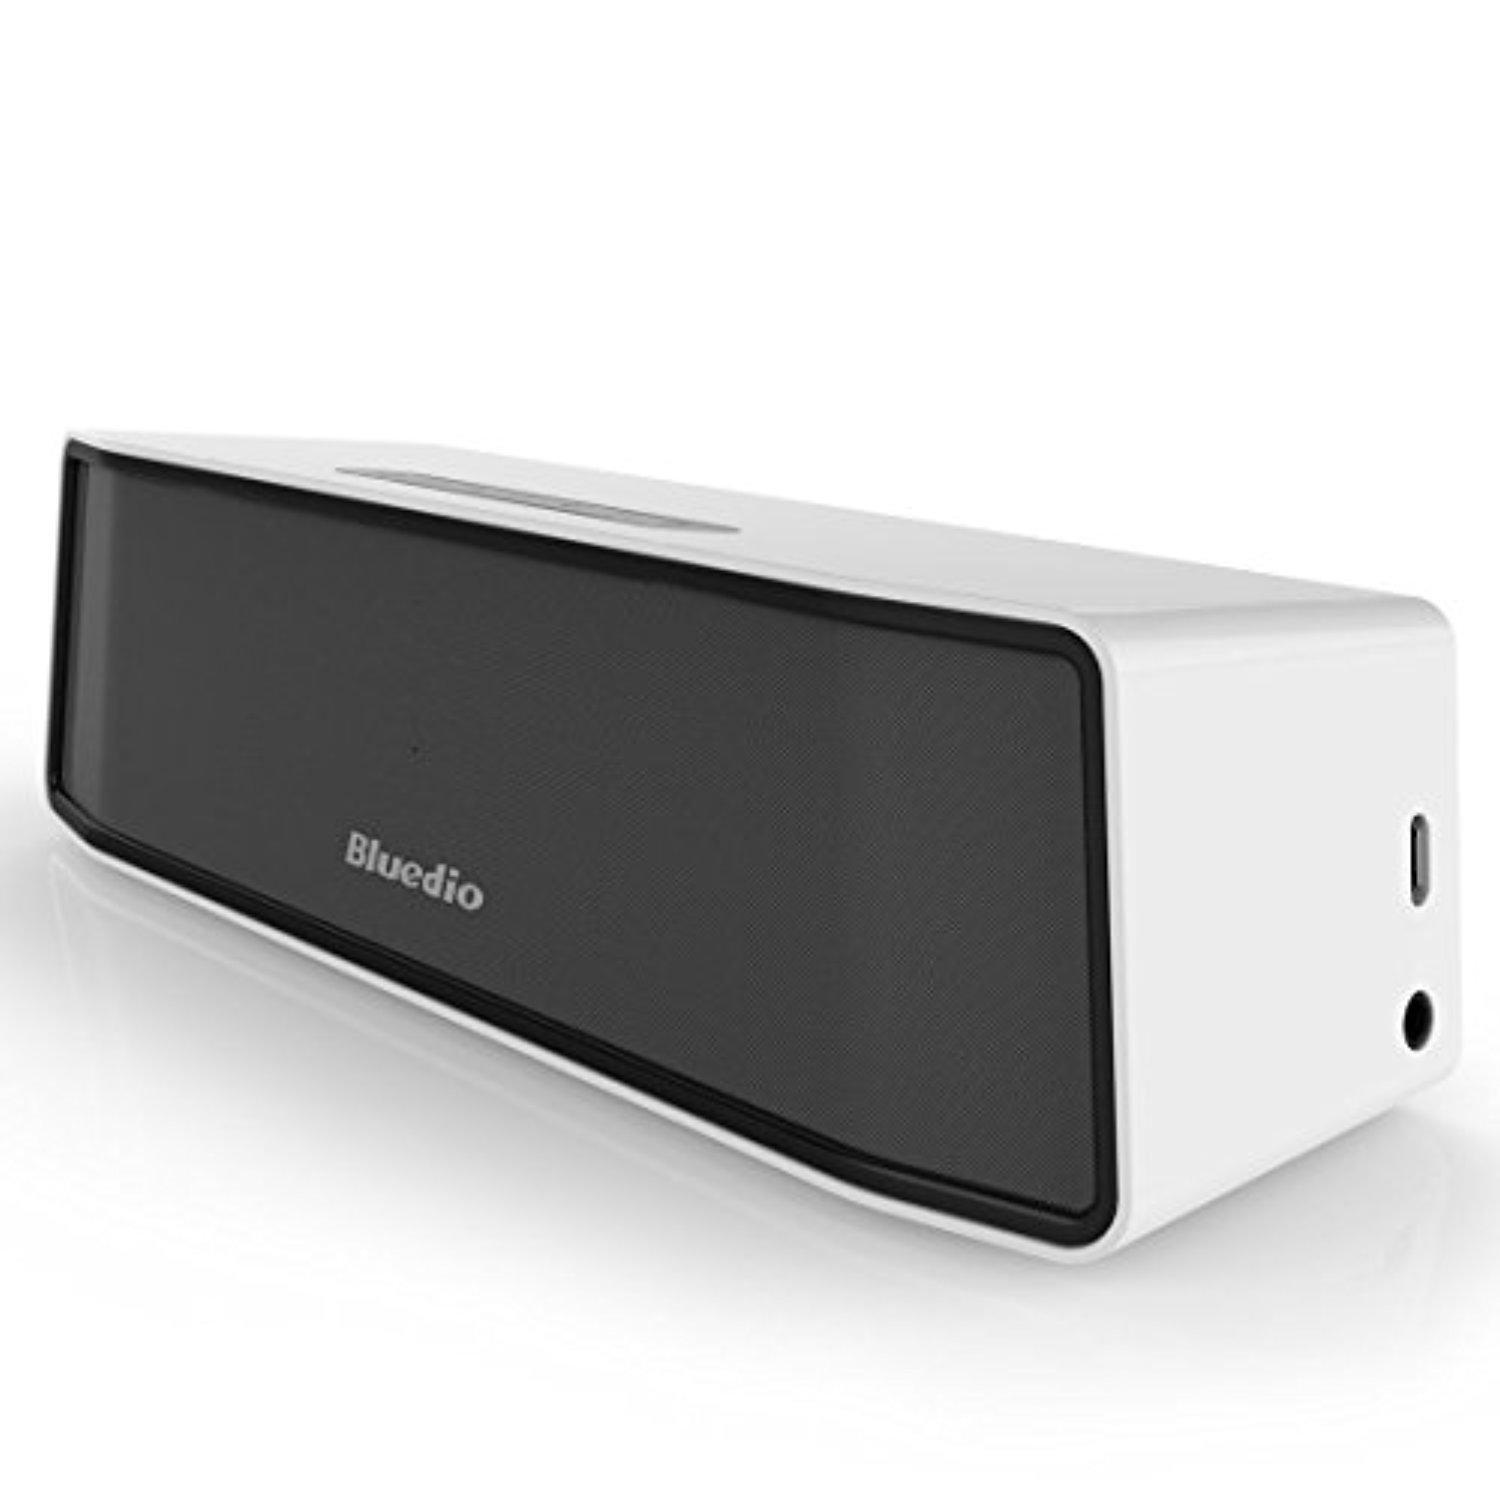 Bluedio BS-2 Bluetooth Wireless Stereo Speakers Portable 4 Smartphone/PC/Tablets